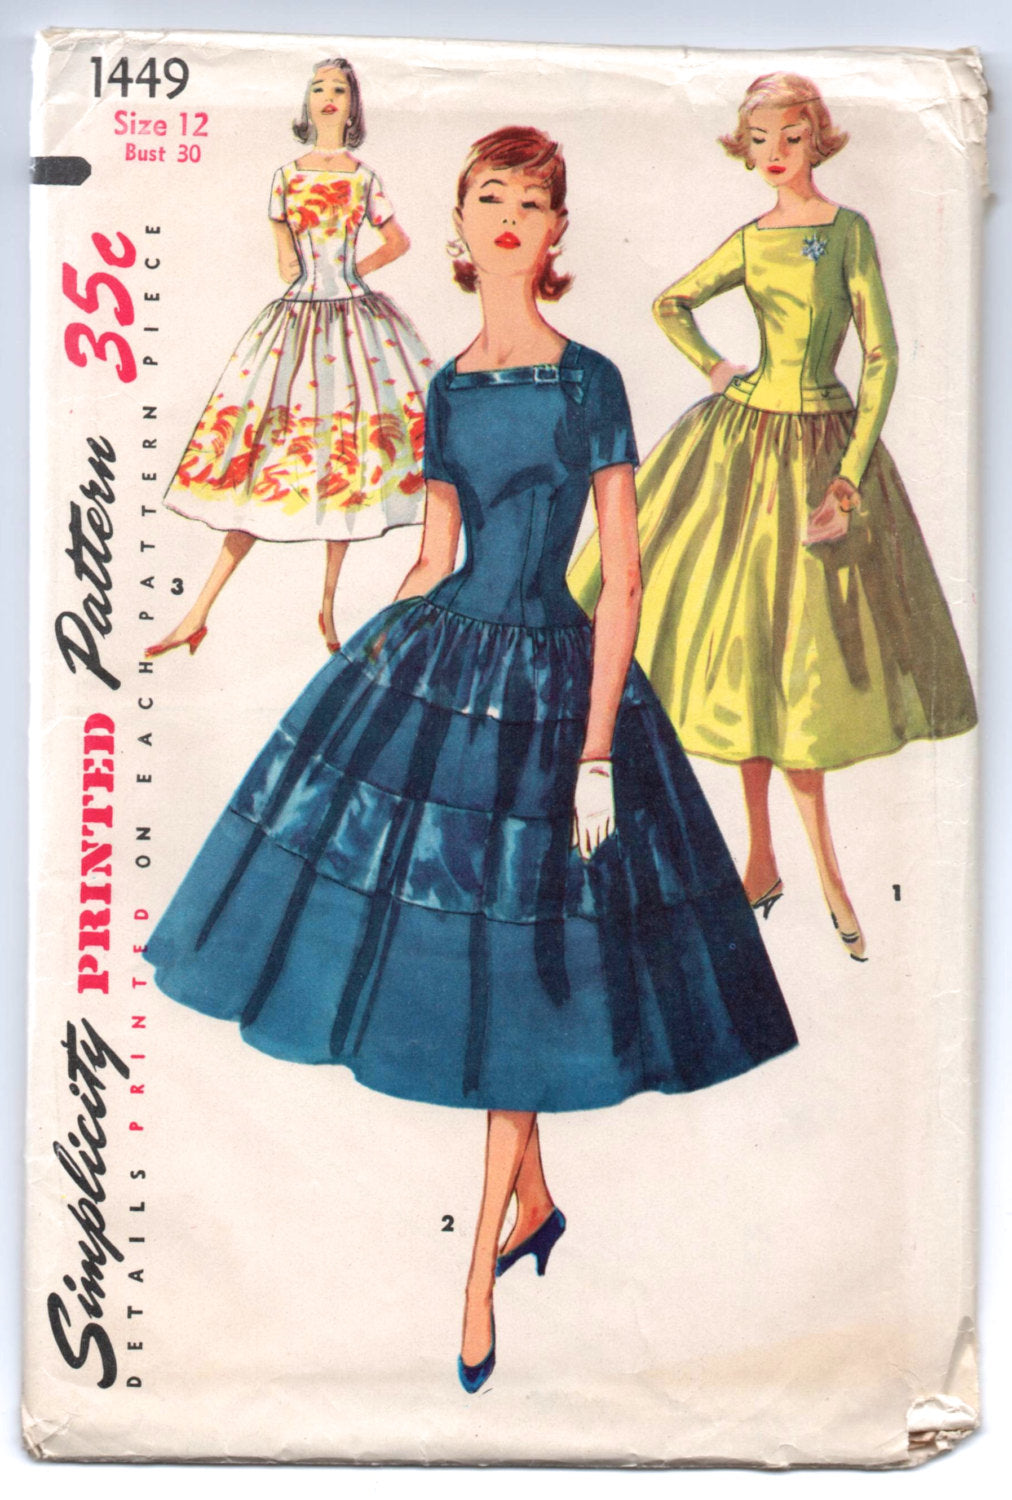 1950's Simplicity Cocktail Dress with Square neckline and Flared Skirt Pattern - UC/FF - Bust 30